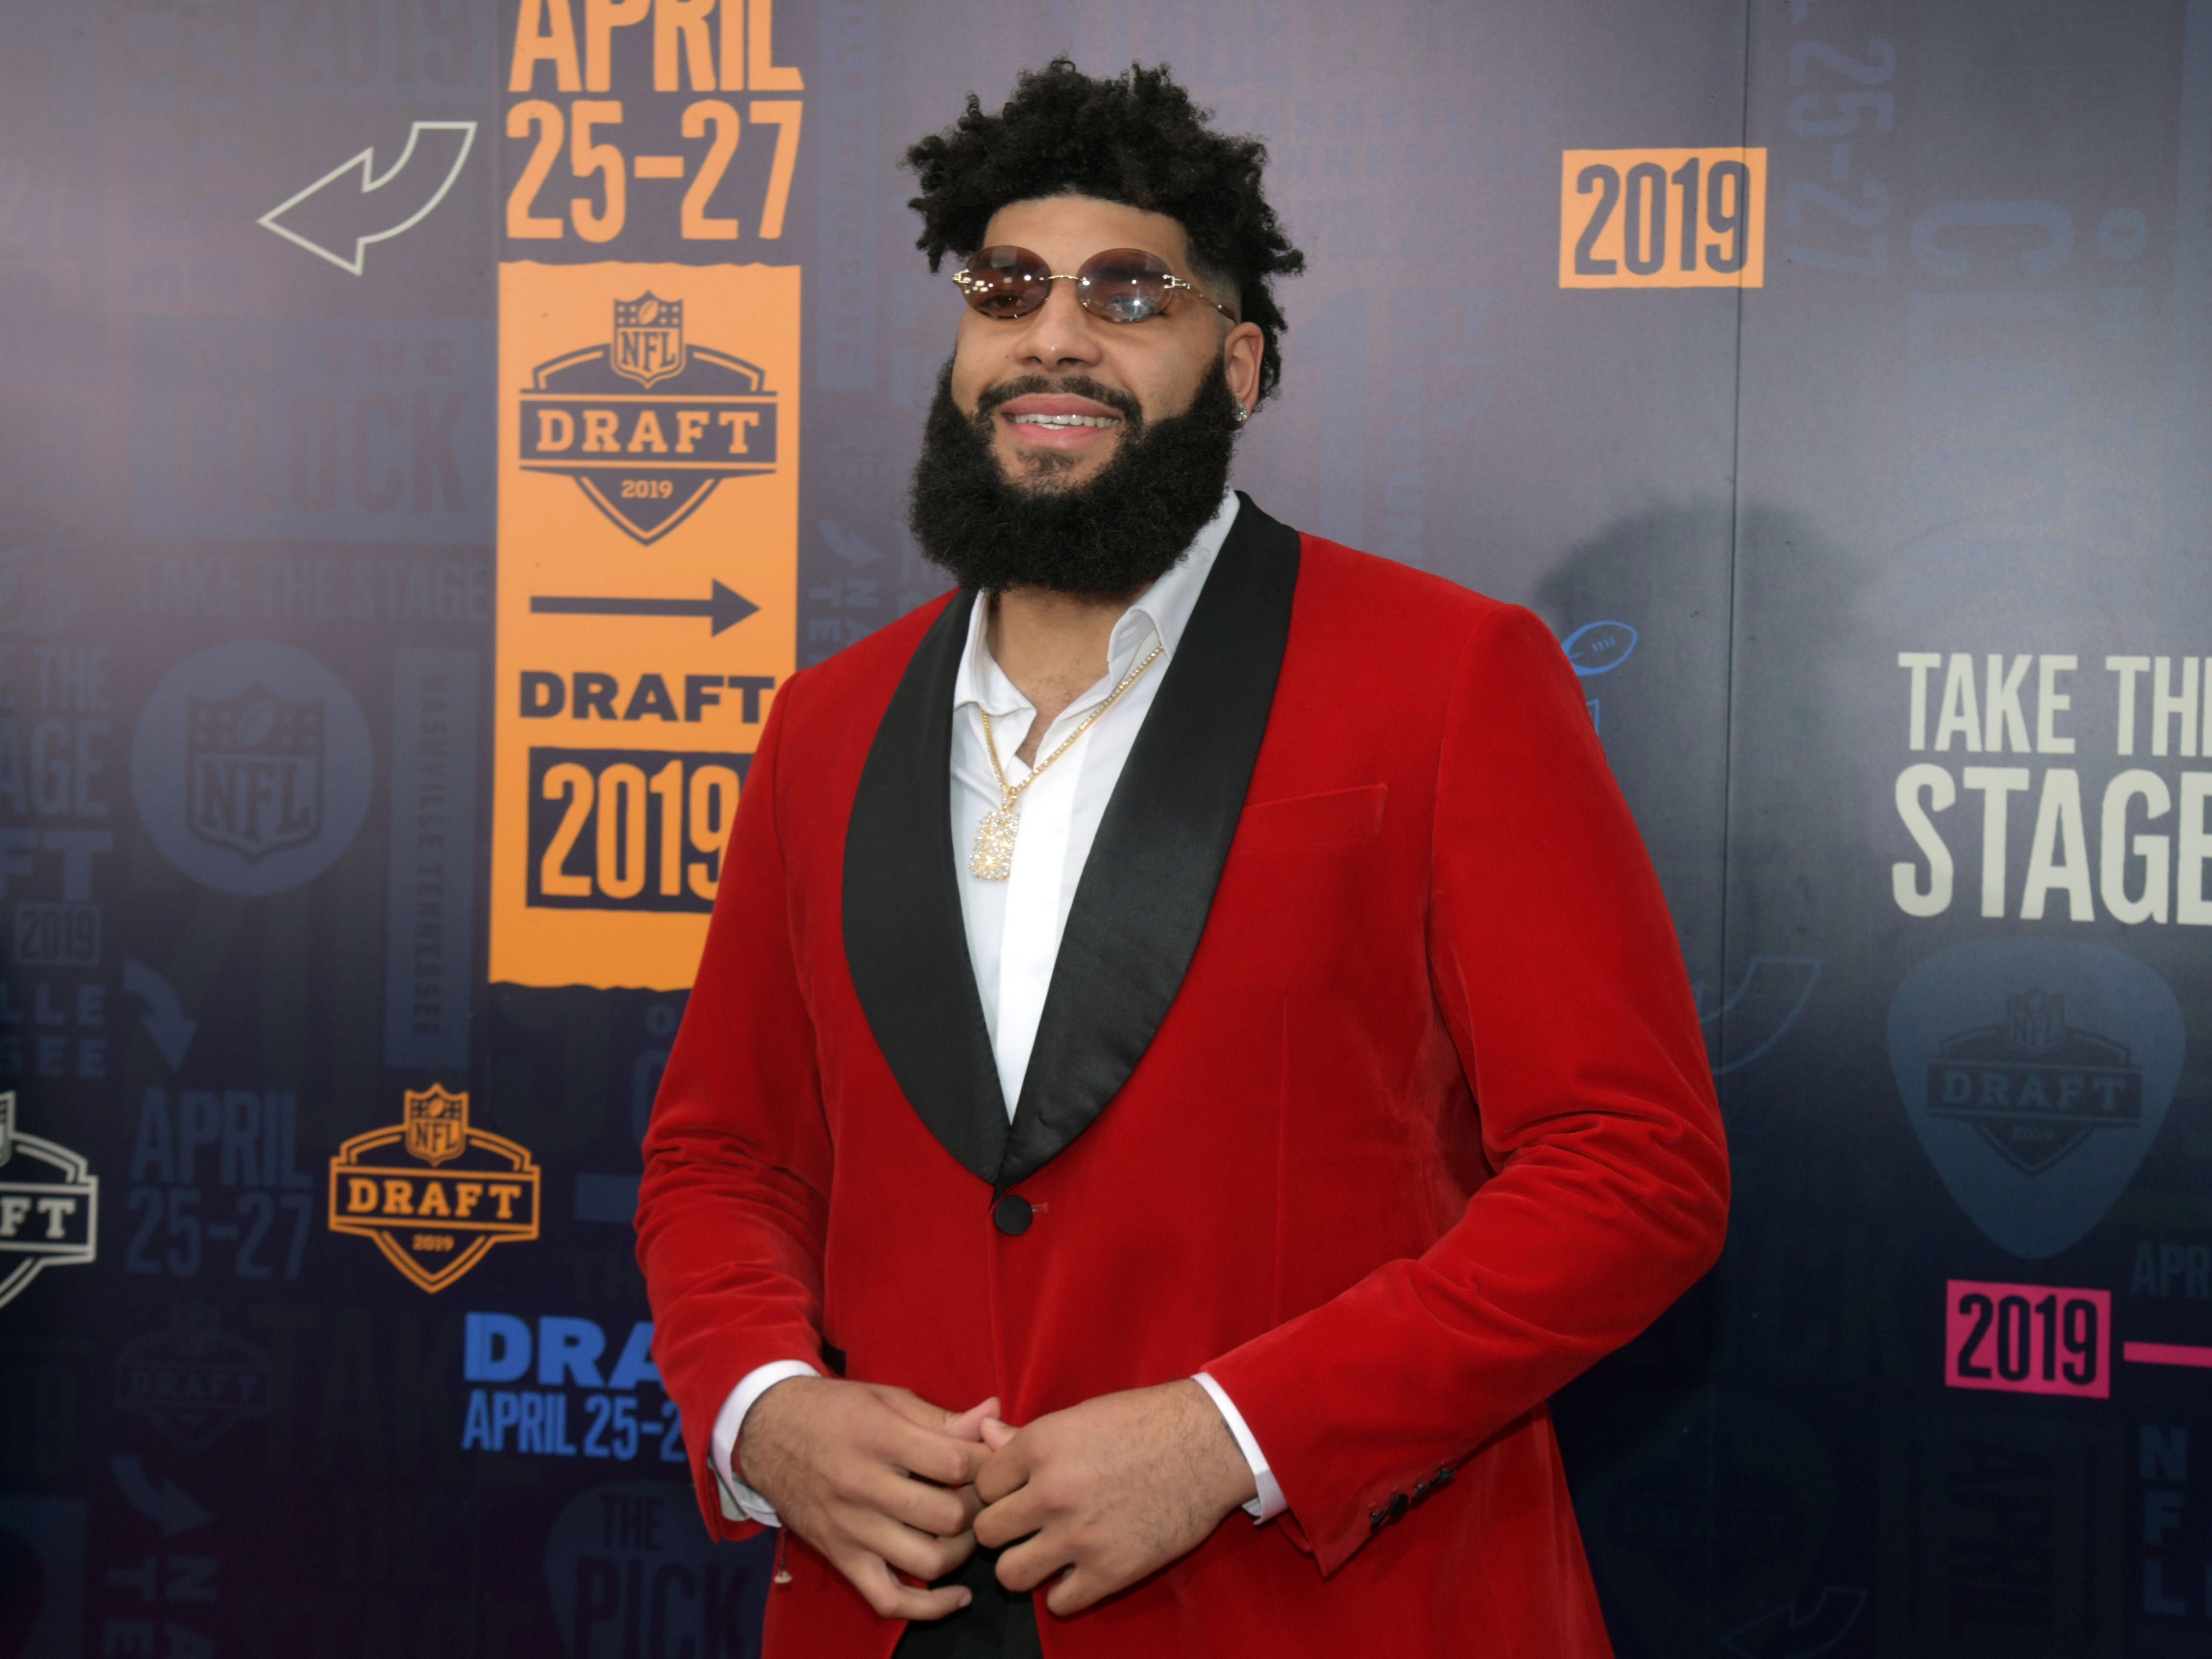 Cody Ford (of Oklahoma) on the red carpet prior to the first round of the 2019 NFL draft.